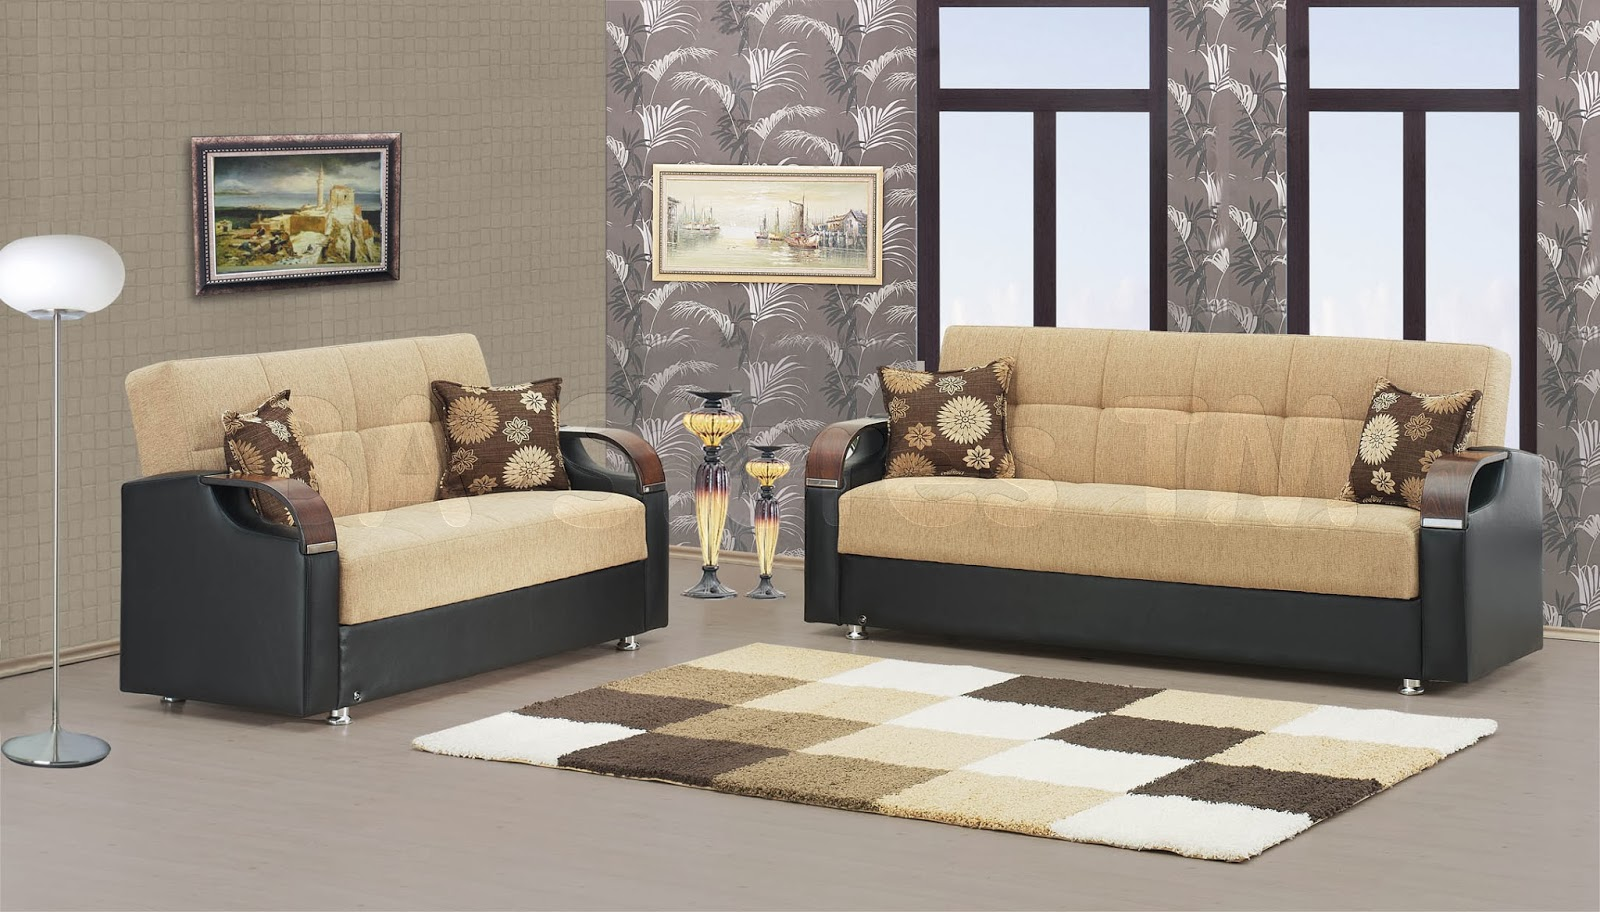 Living room design with leather sofa living room for Sitting room sofa designs